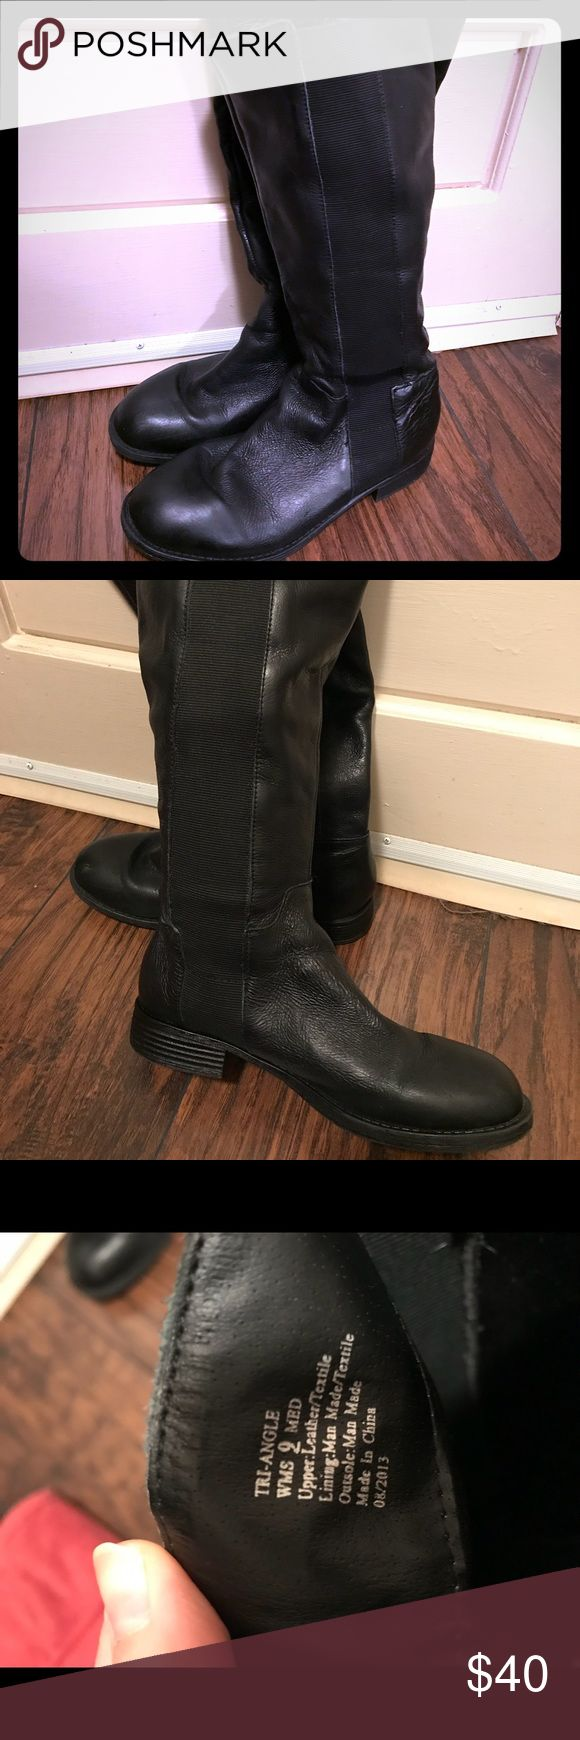 Black Leather & Stretch Knee High Boots- size 9 Black Leather and Stretch Knee High Boots- size 9 Flat Soles Shoes Winter & Rain Boots